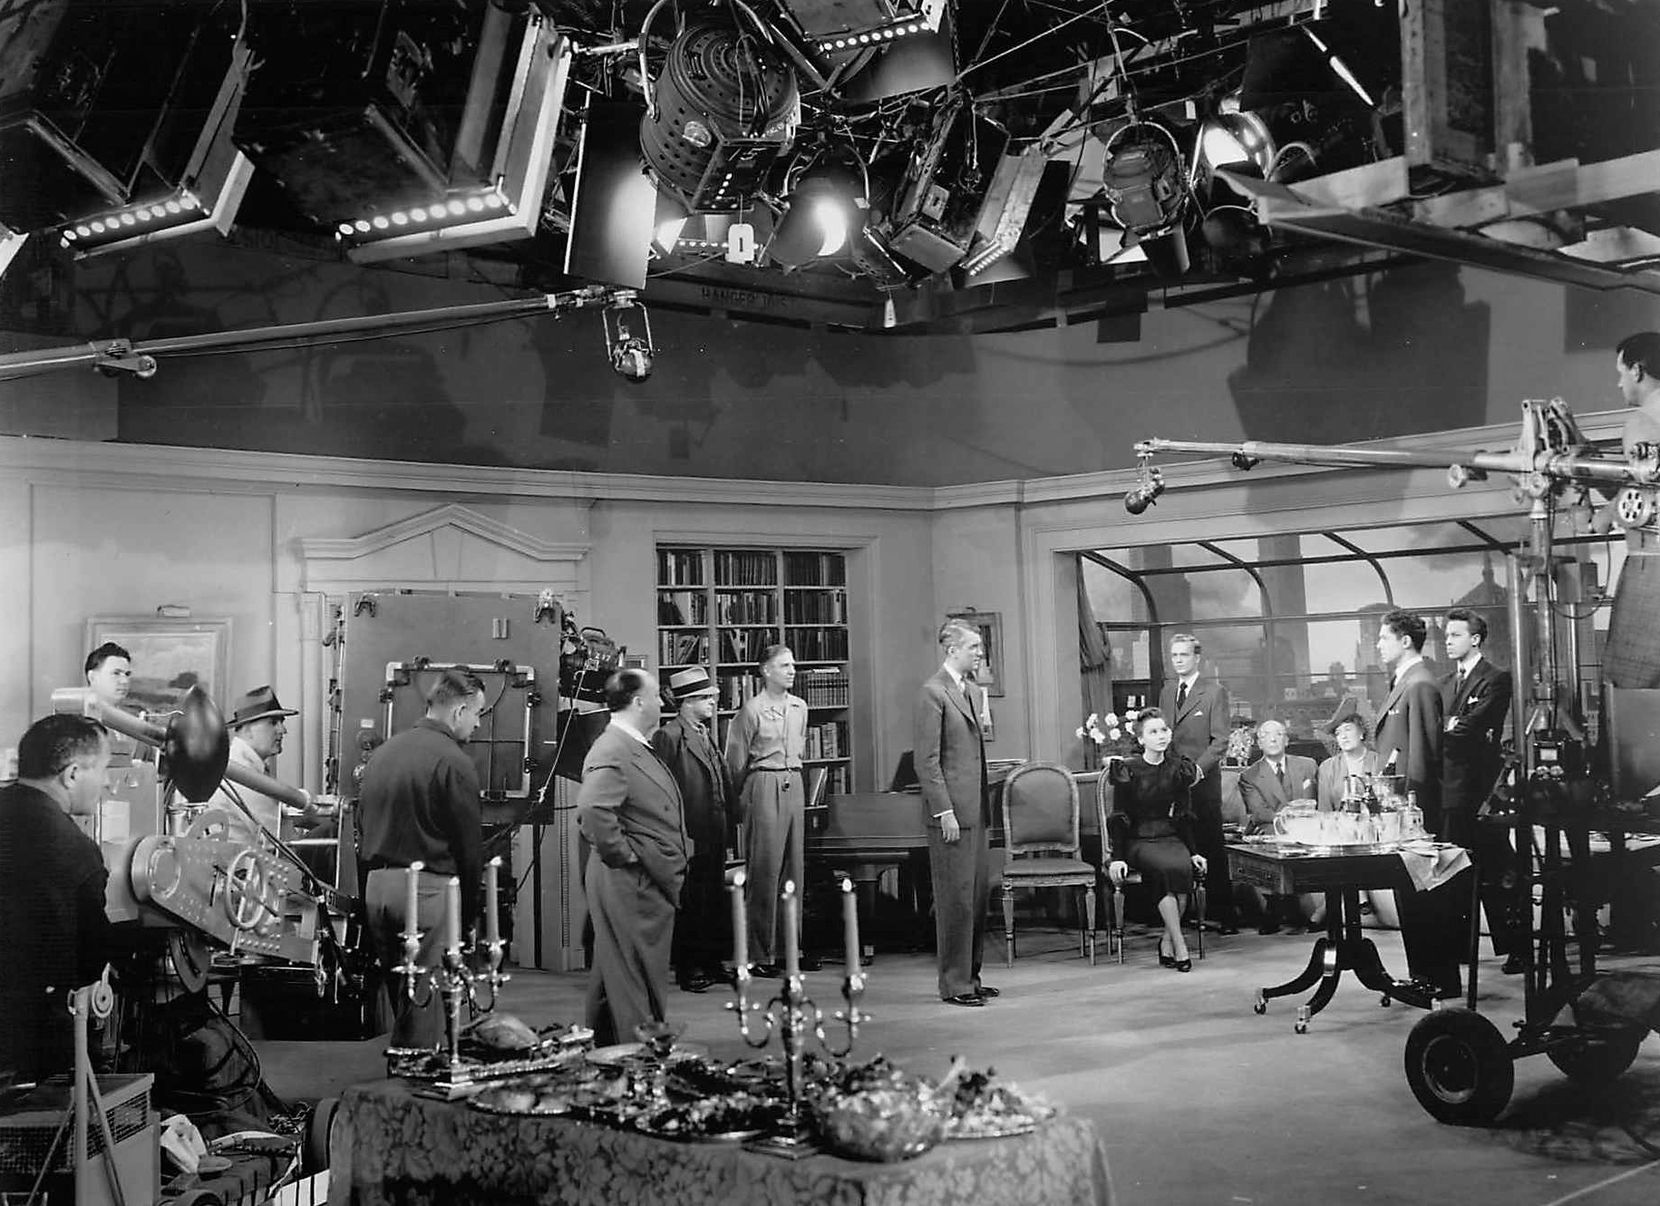 Director Alfred Hitchcock (center) rehearses star Jimmy Stewart and the cast as technicians look on during the making of Rope. Universal City Studios, 1948.